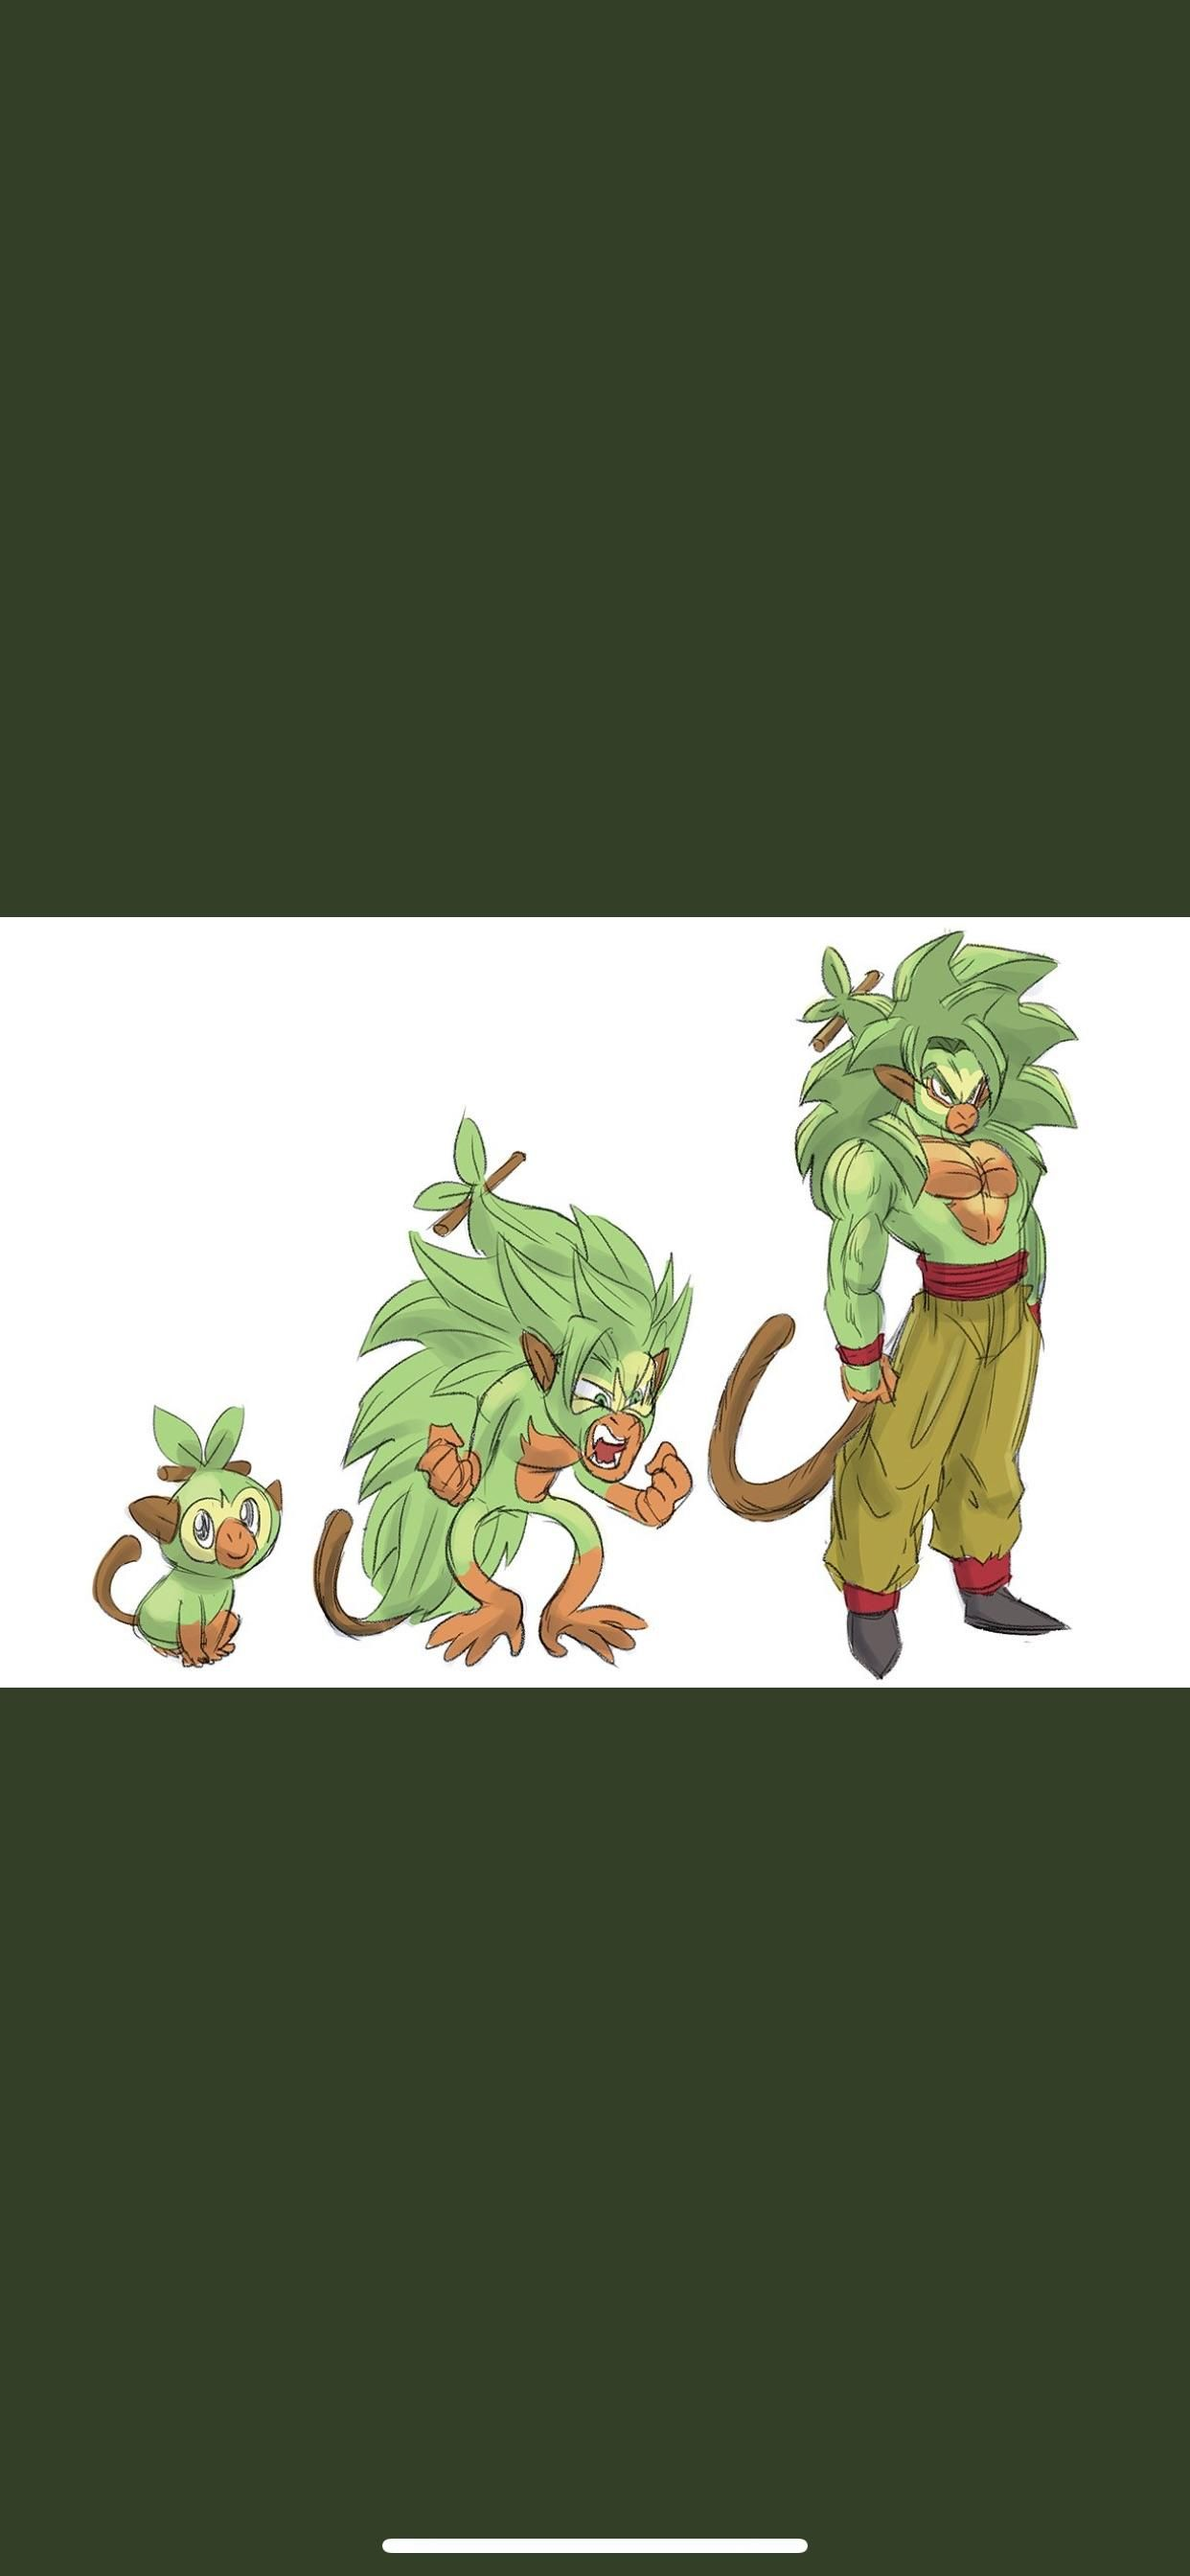 99 Sure This Is Grookys Real Evolution Funny Memes Pics 01.11.2019 · rillaboom (grooky's final evolution) the secondary evolutions of sobble and hello everyone could someone trade me a grooky and in return i will give a scorbunny or sobble. pinterest